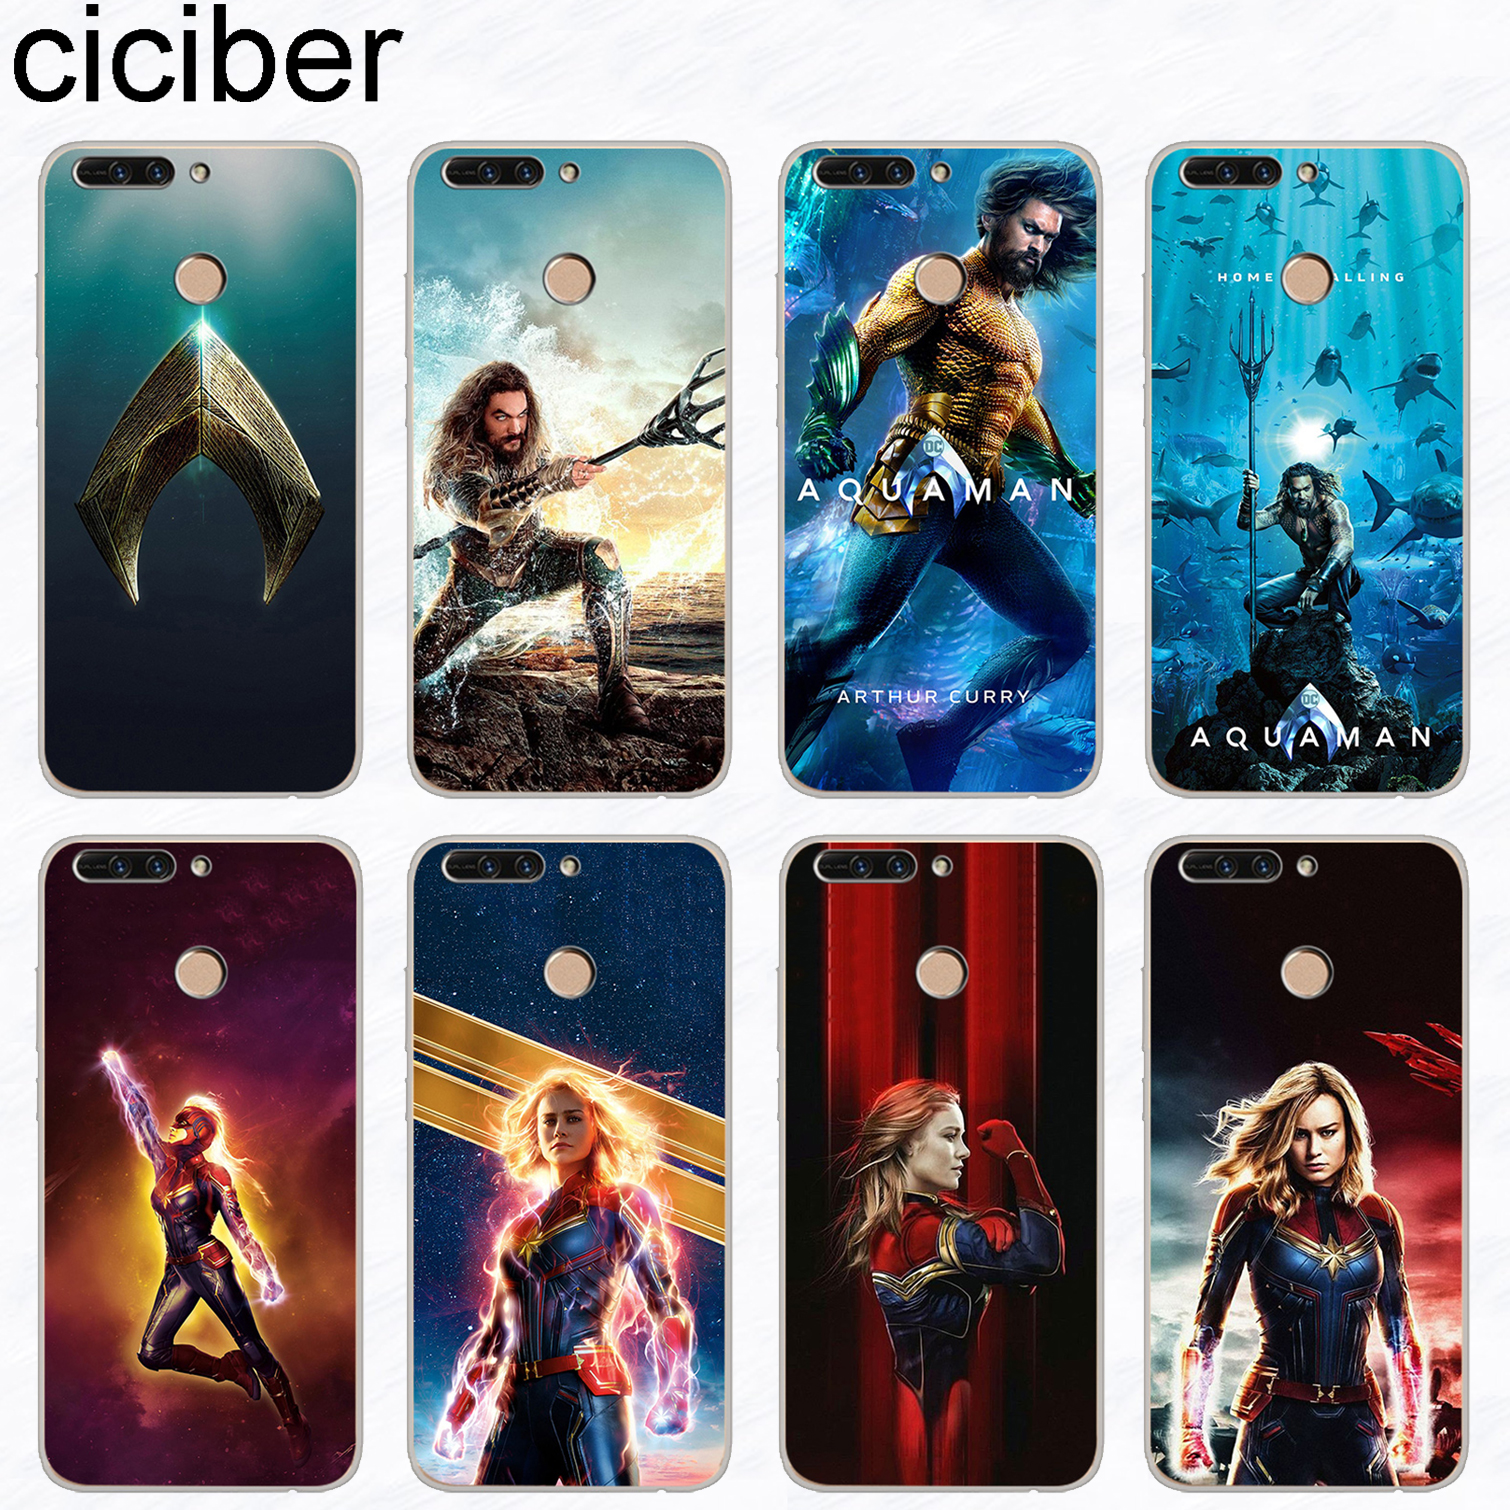 ciciber Aquaman Captain Marvel Phone Case For Huawei Honor 8X 7A Pro 8C 6X Soft TPU For Honor 10 9 8 Lite Play V10 V9 Funda Capa image